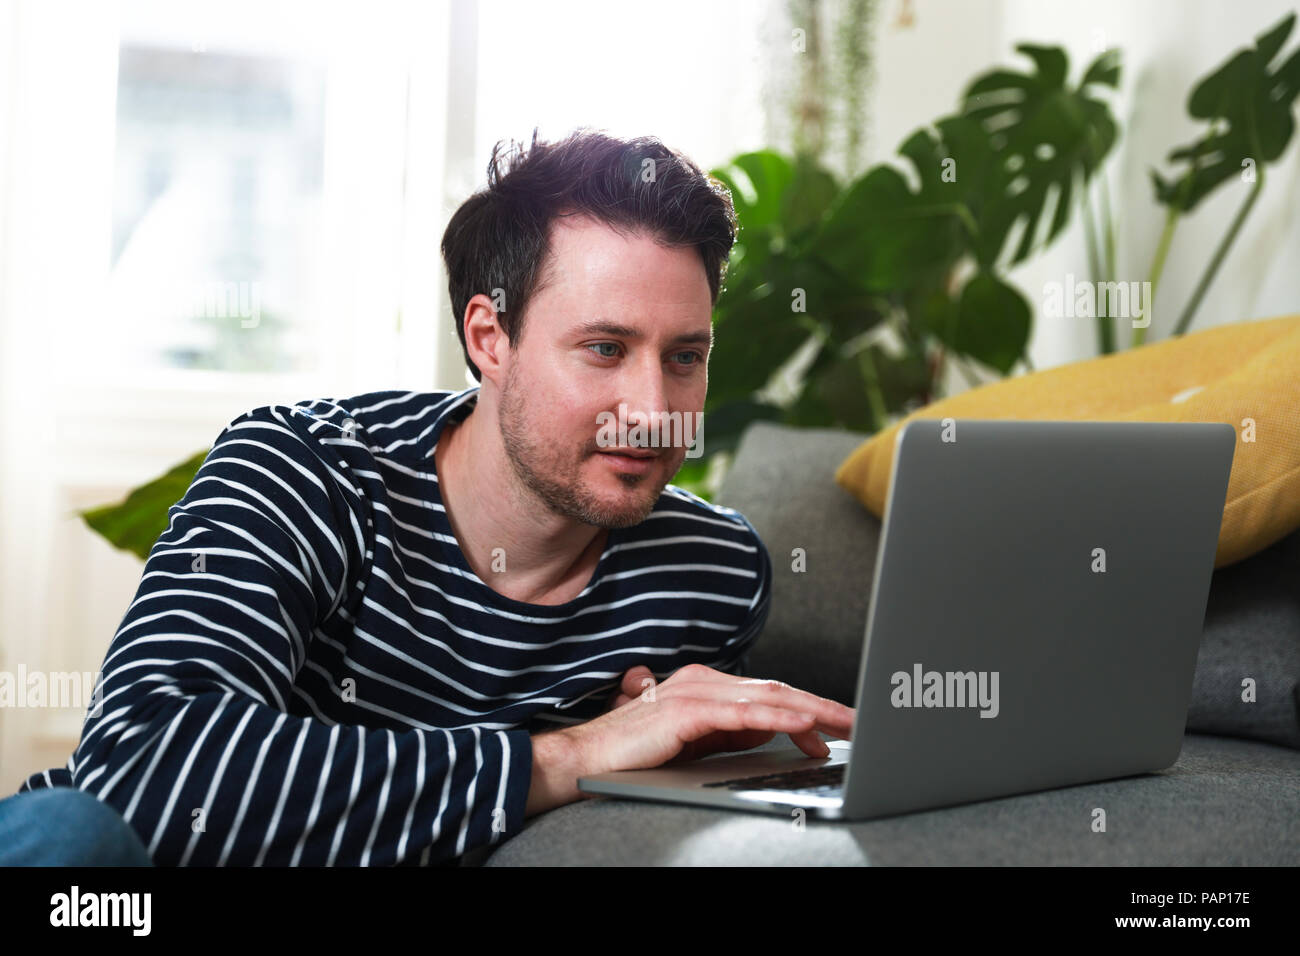 Man sitting at home, using laptop - Stock Image